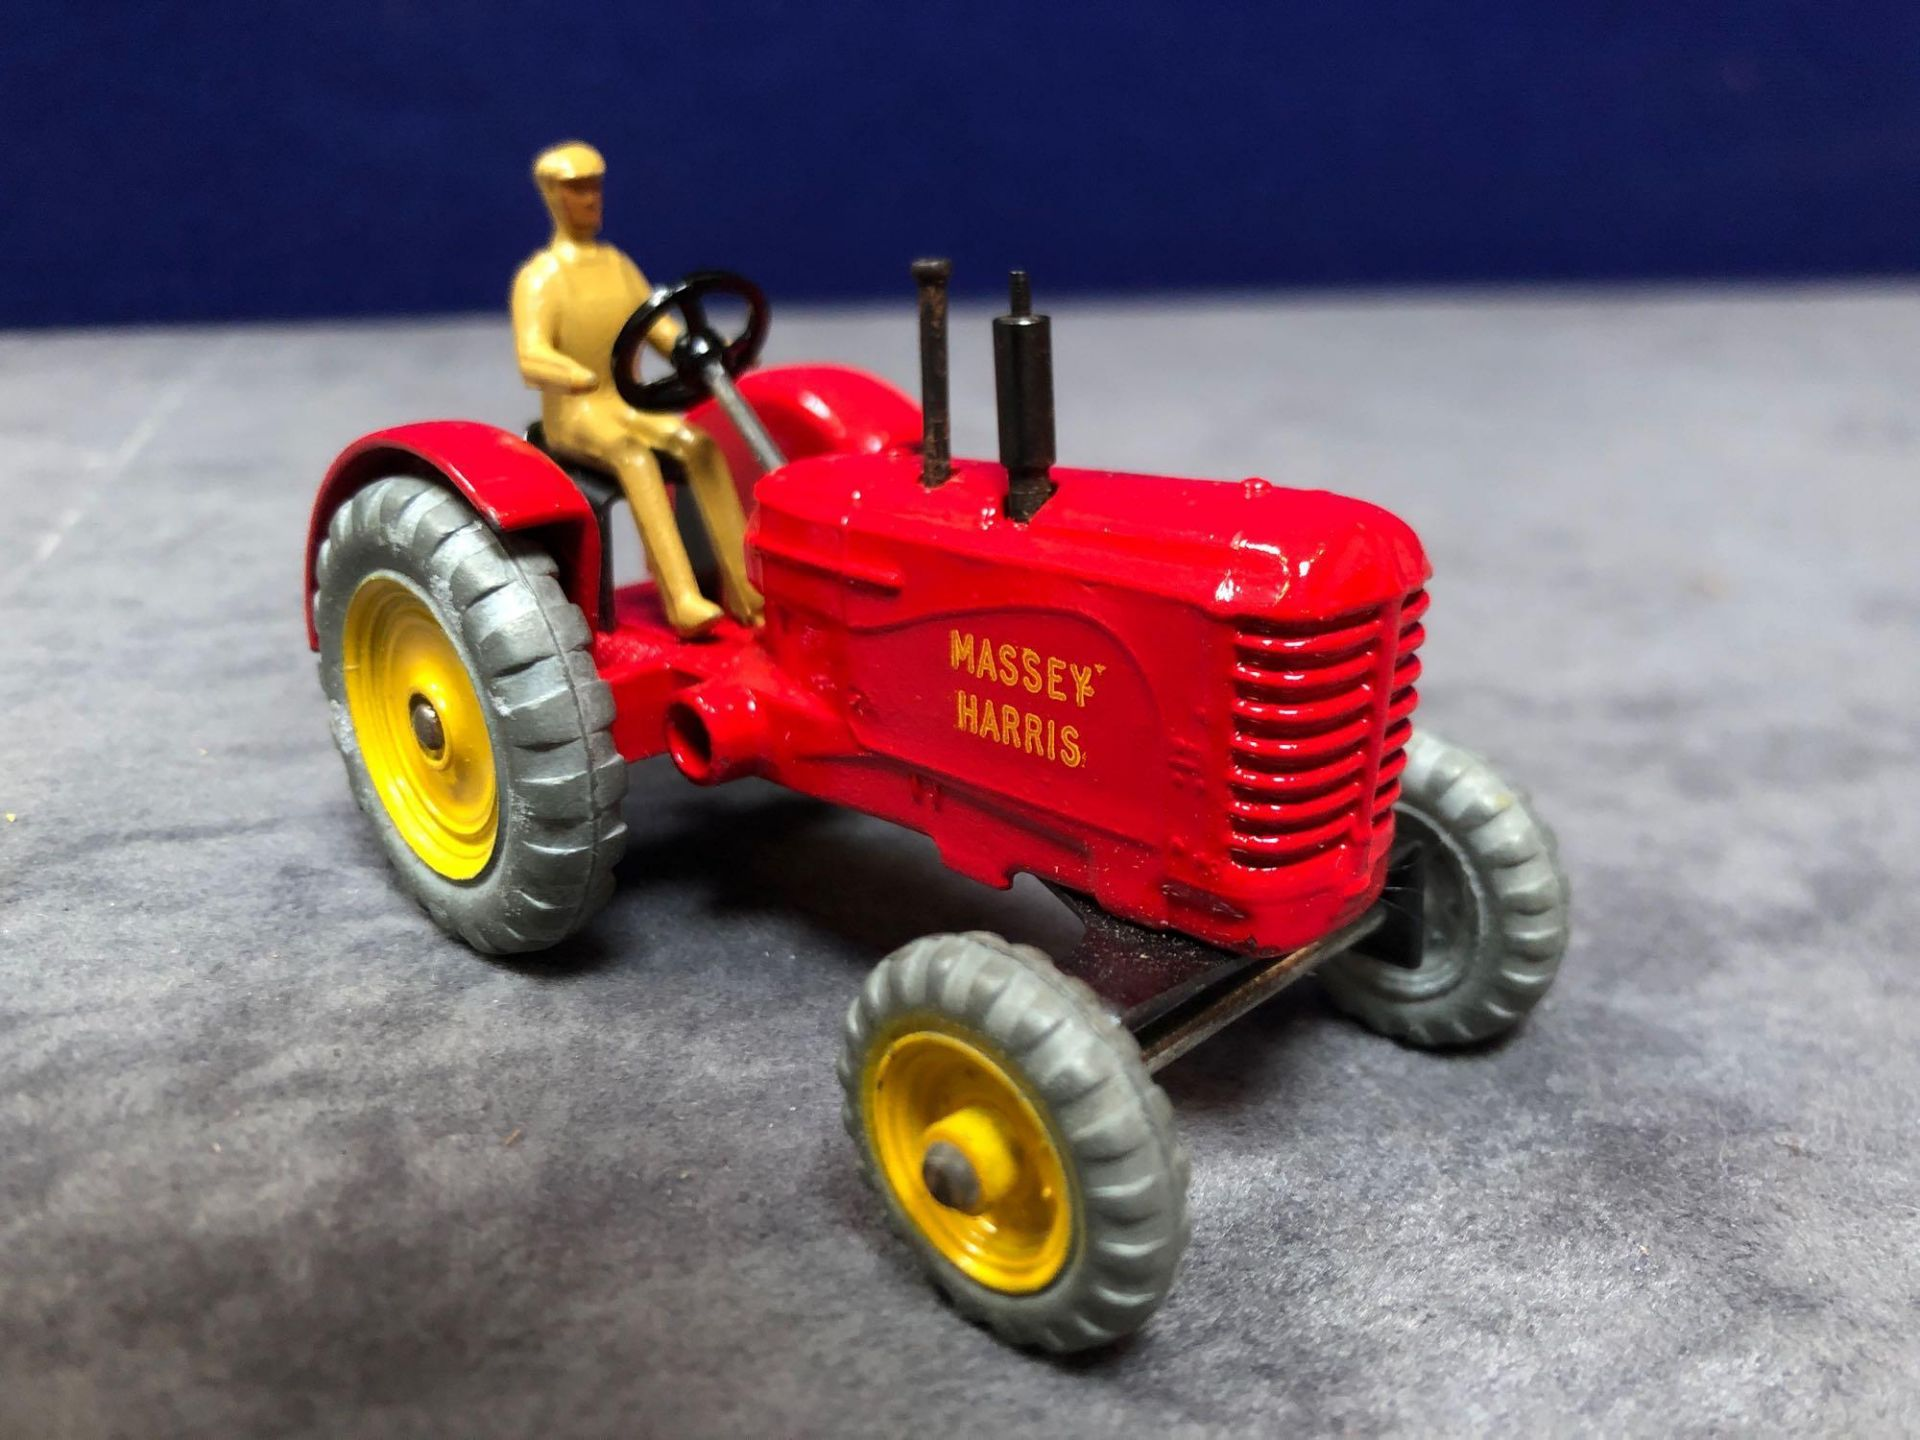 Dinky #300 Massey Harris Tractor mint in near mint slightly soiled box 1966-1971 - Image 2 of 4